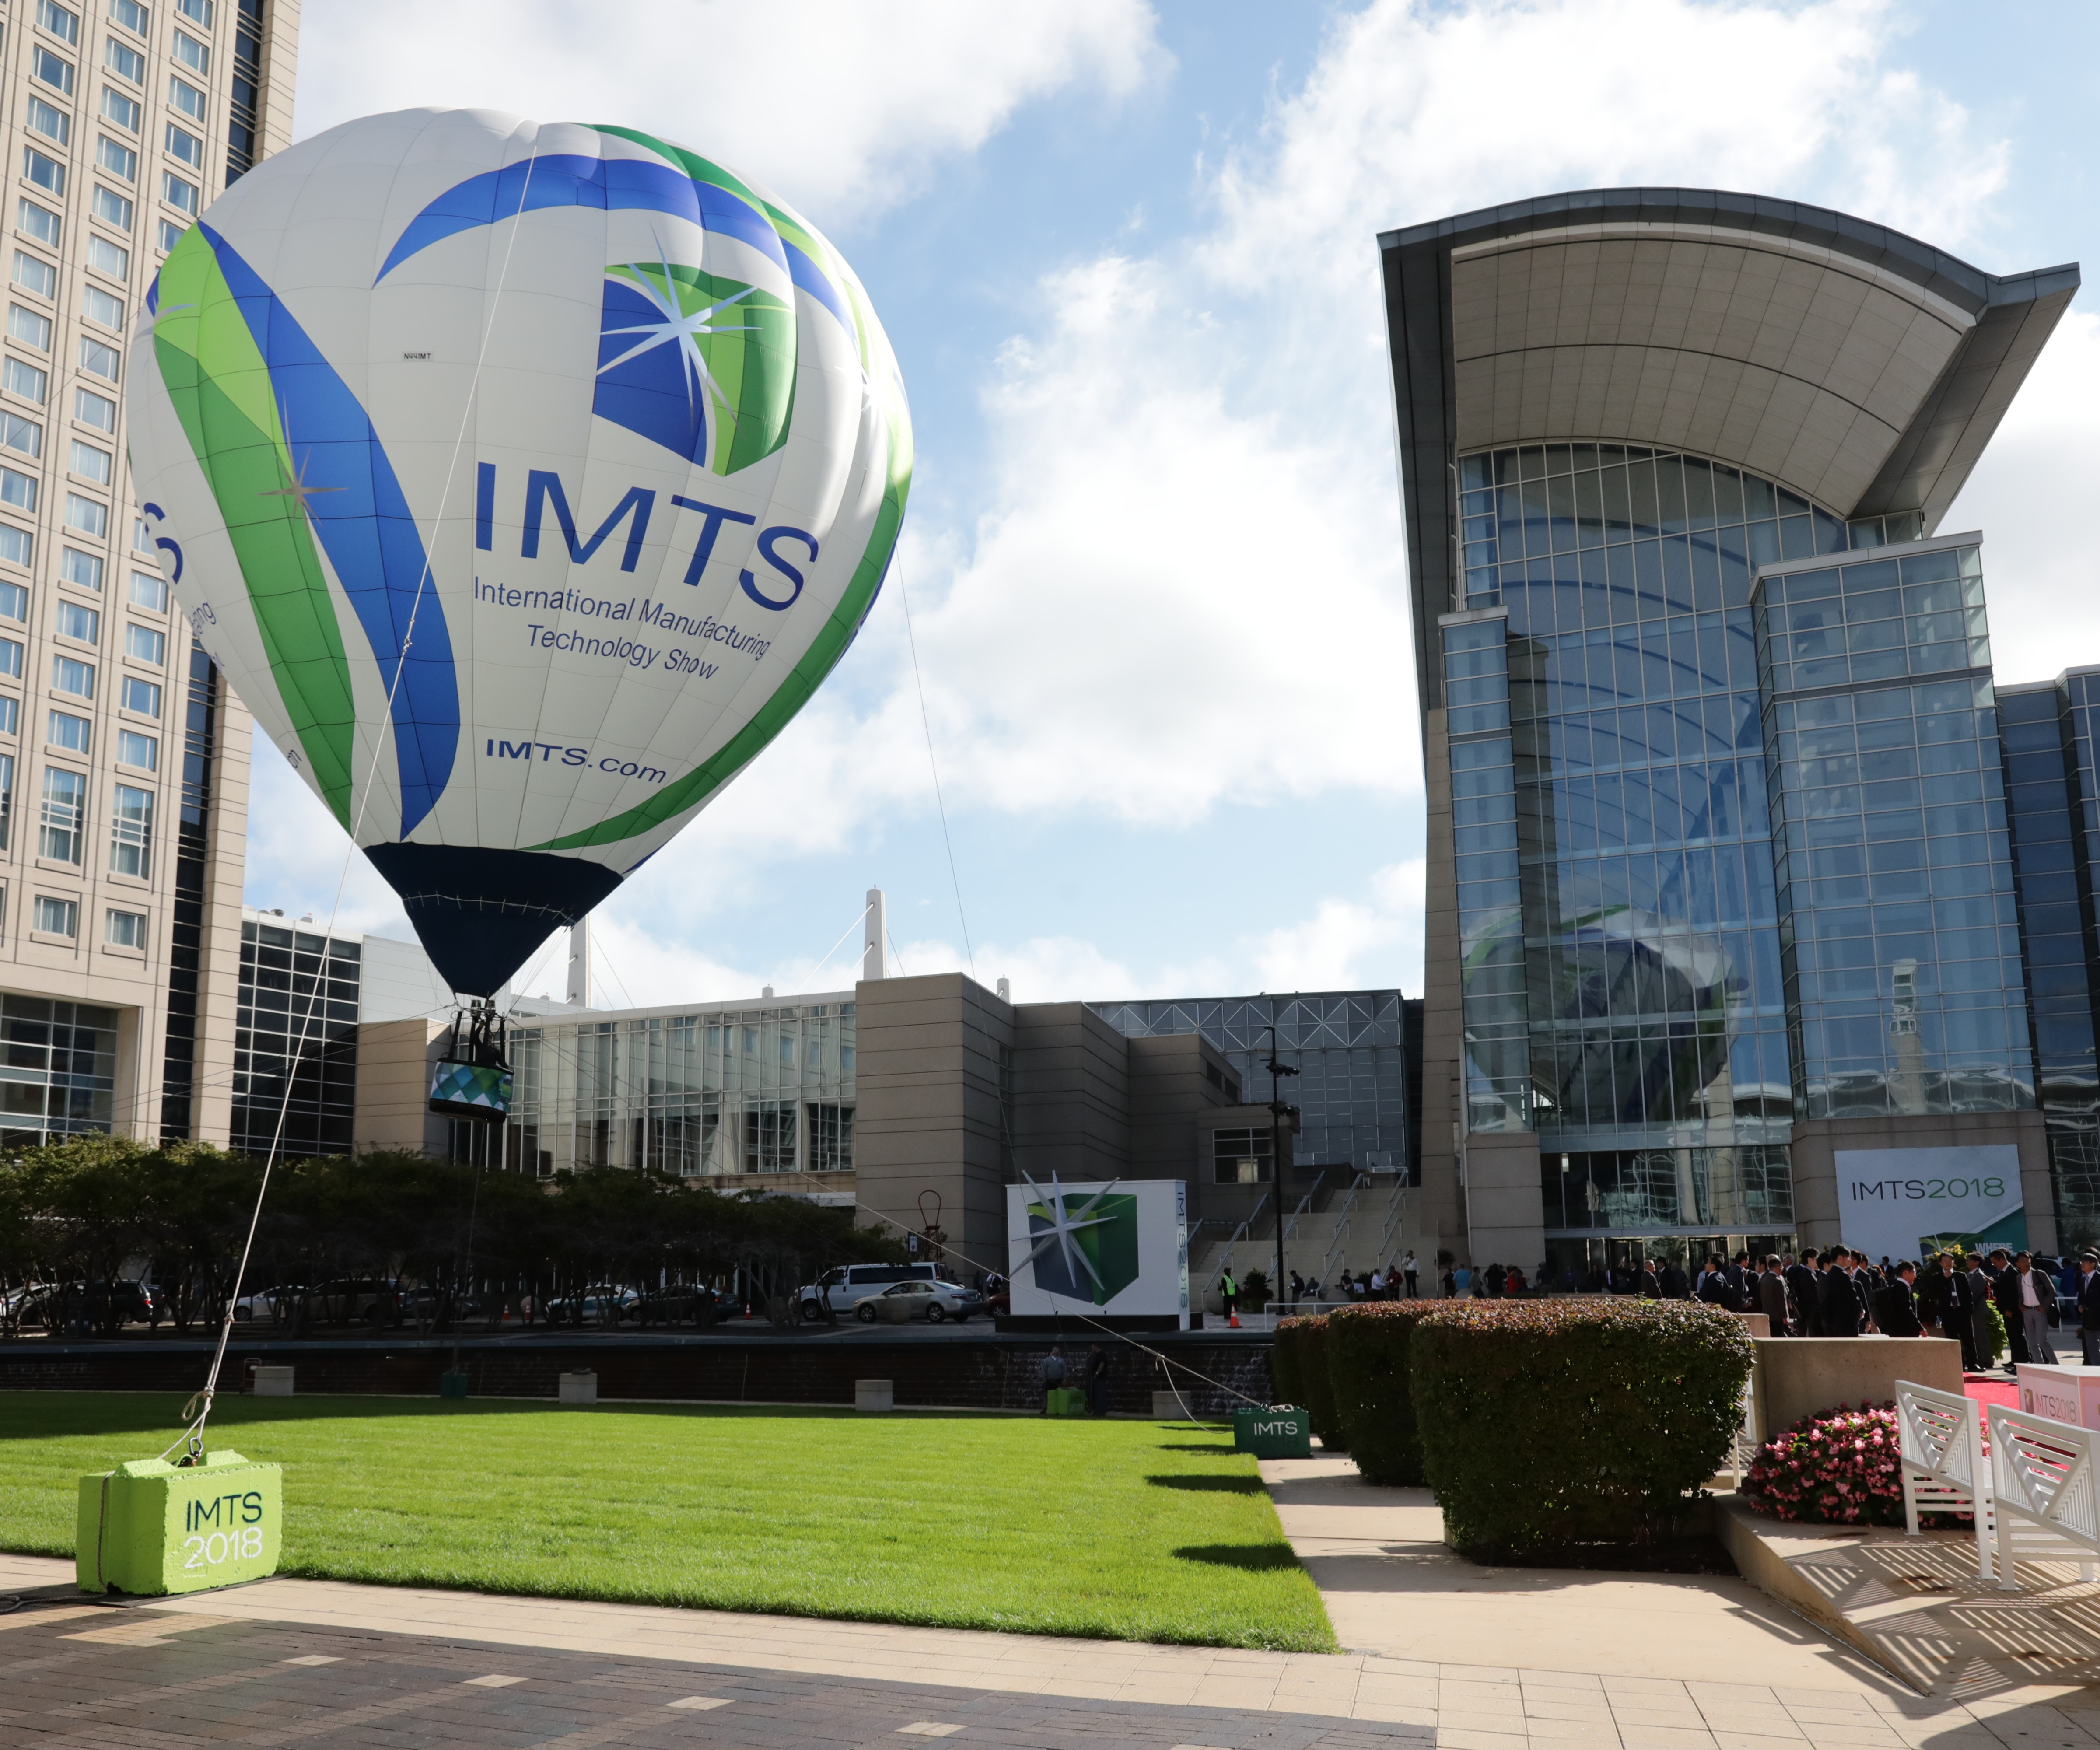 The IMTS 2018 Balloon